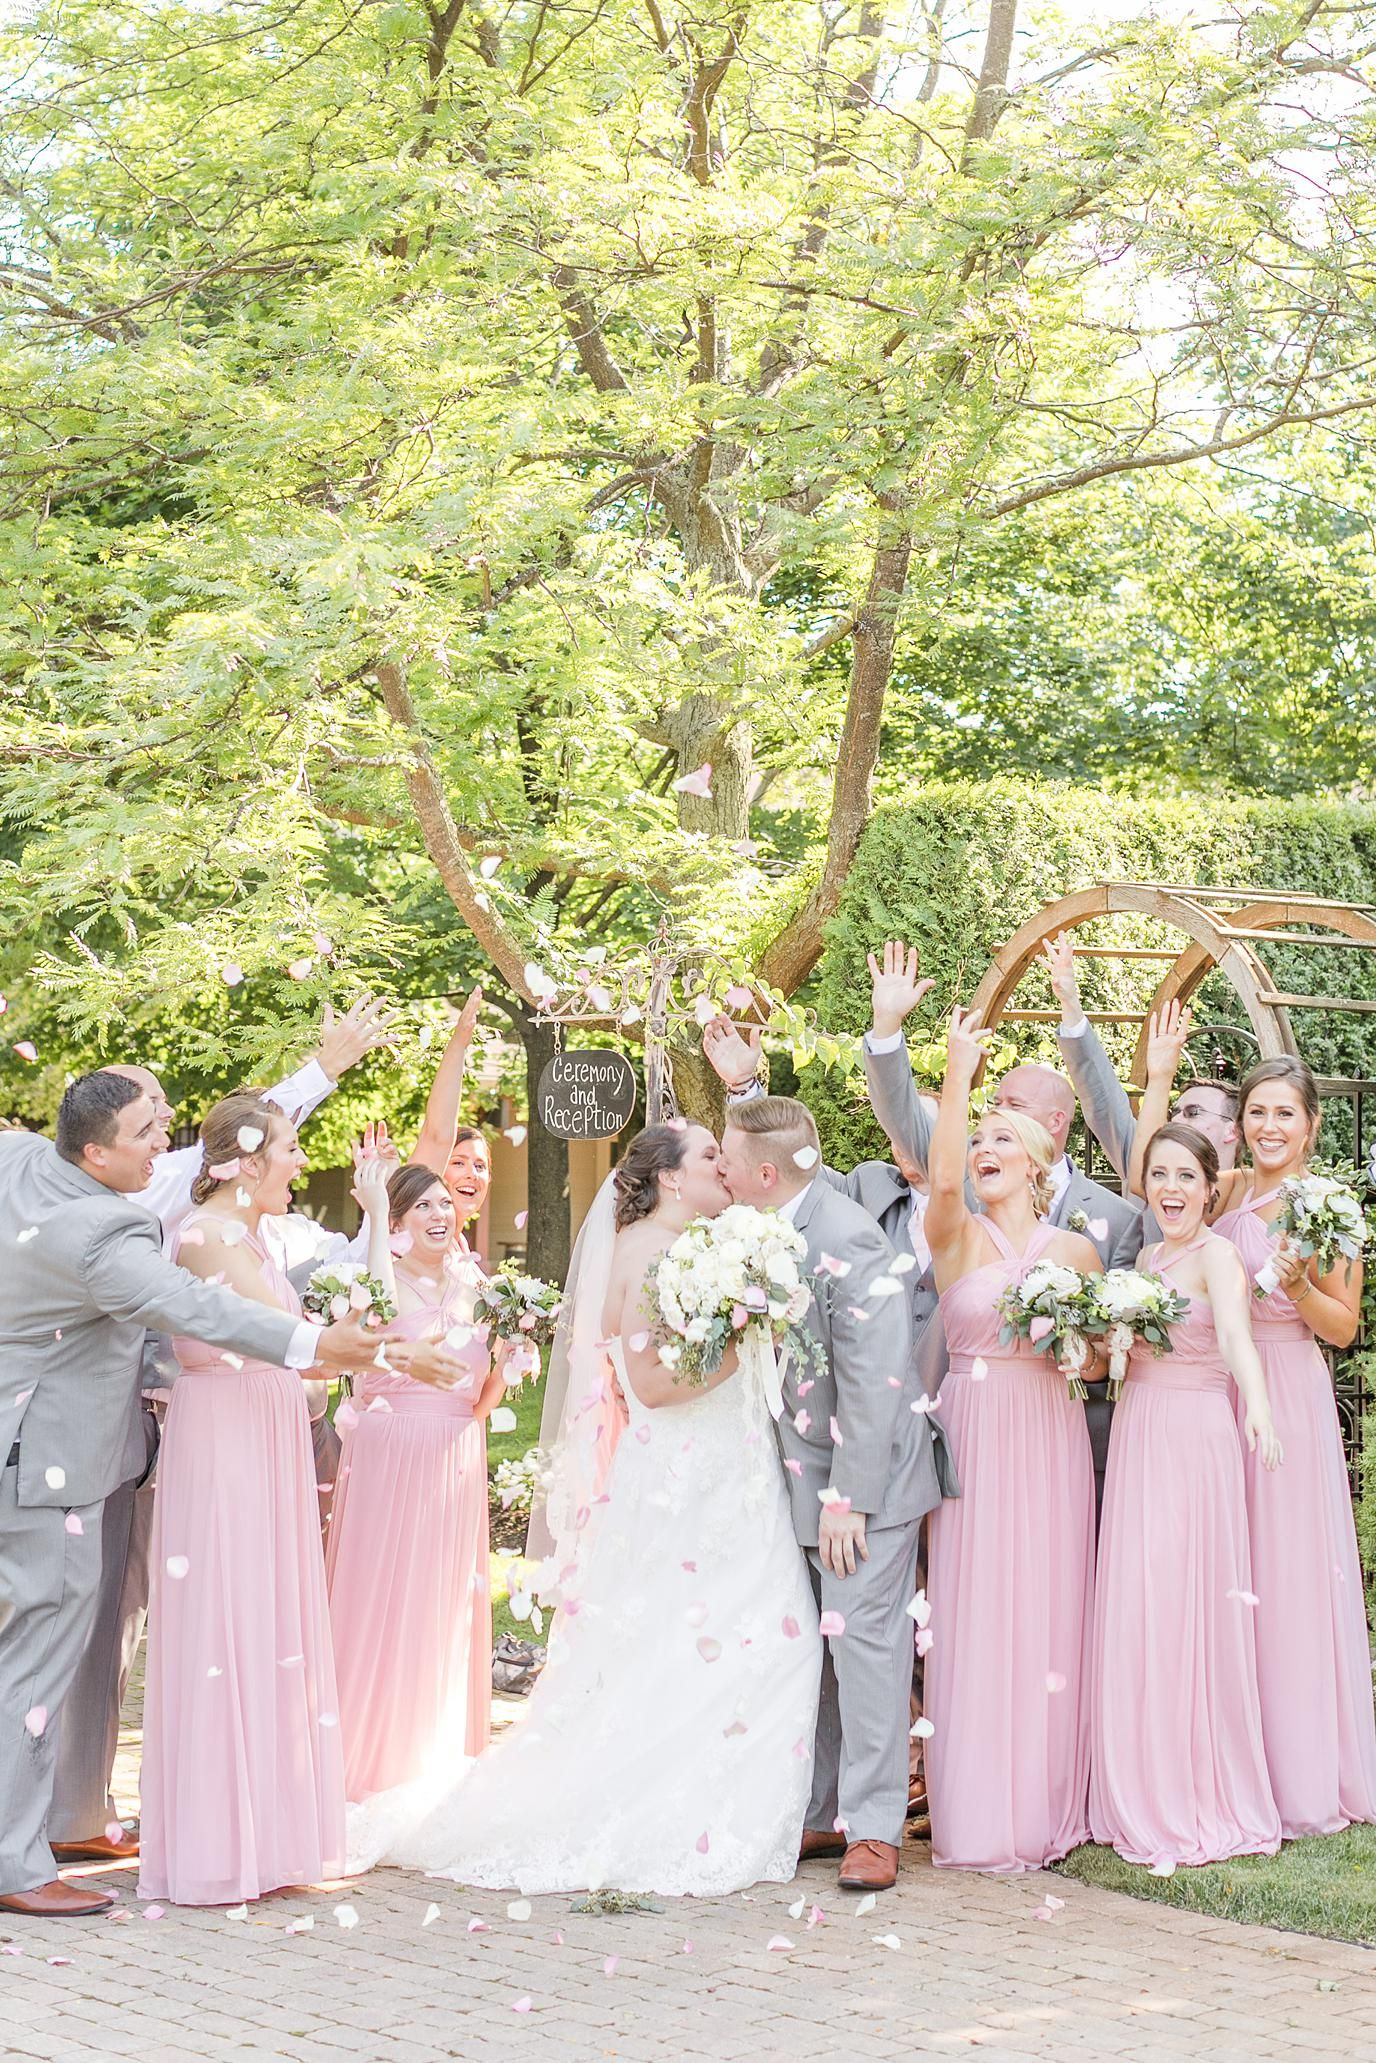 A classy and elegant blush wedding at the gardens of woodstock